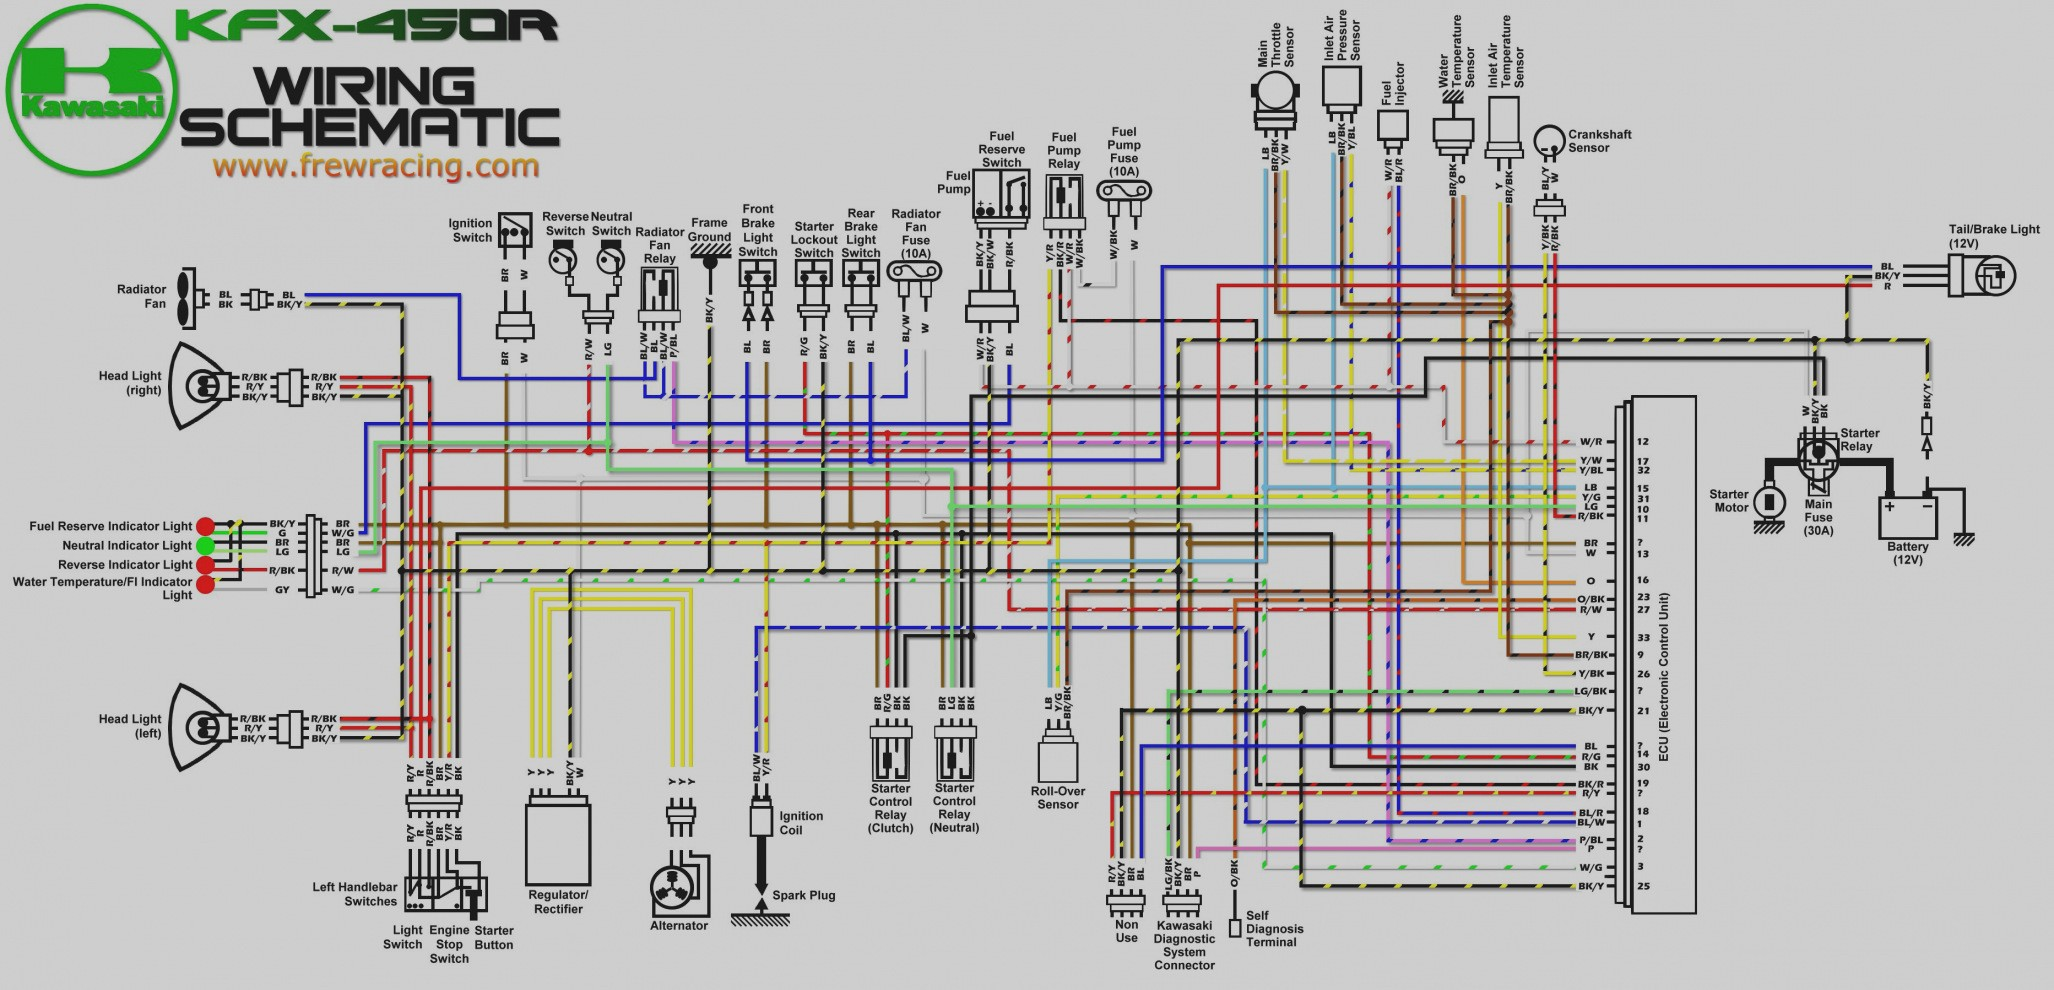 Ltr 450 Wiring Diagram - Wiring Diagram AllWiring Diagram All - excite-ing.de